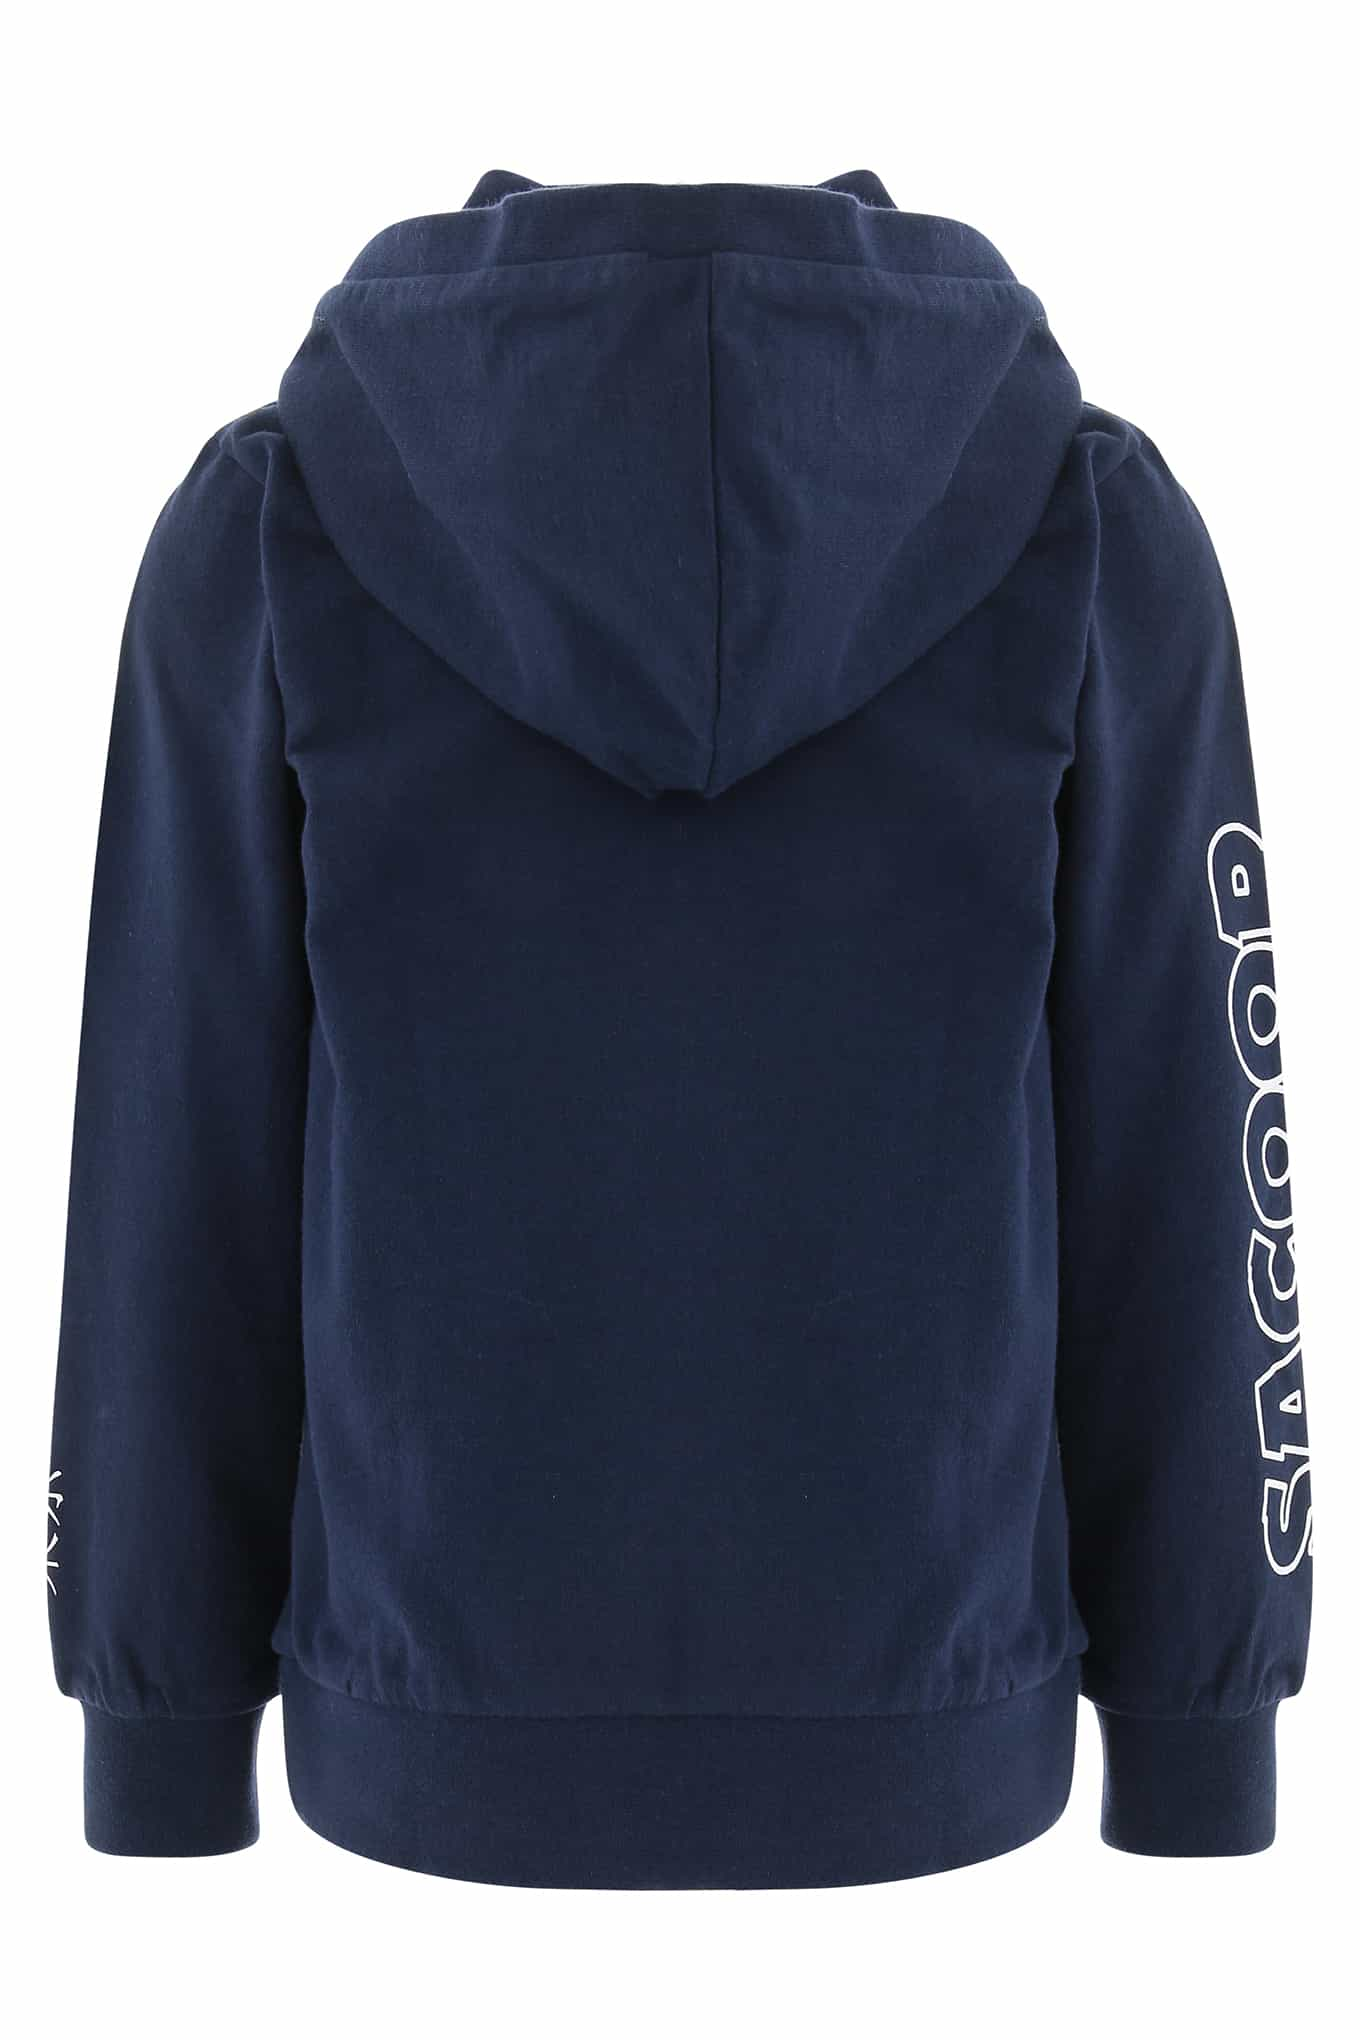 Sweatshirt Dark Blue Sport Boy